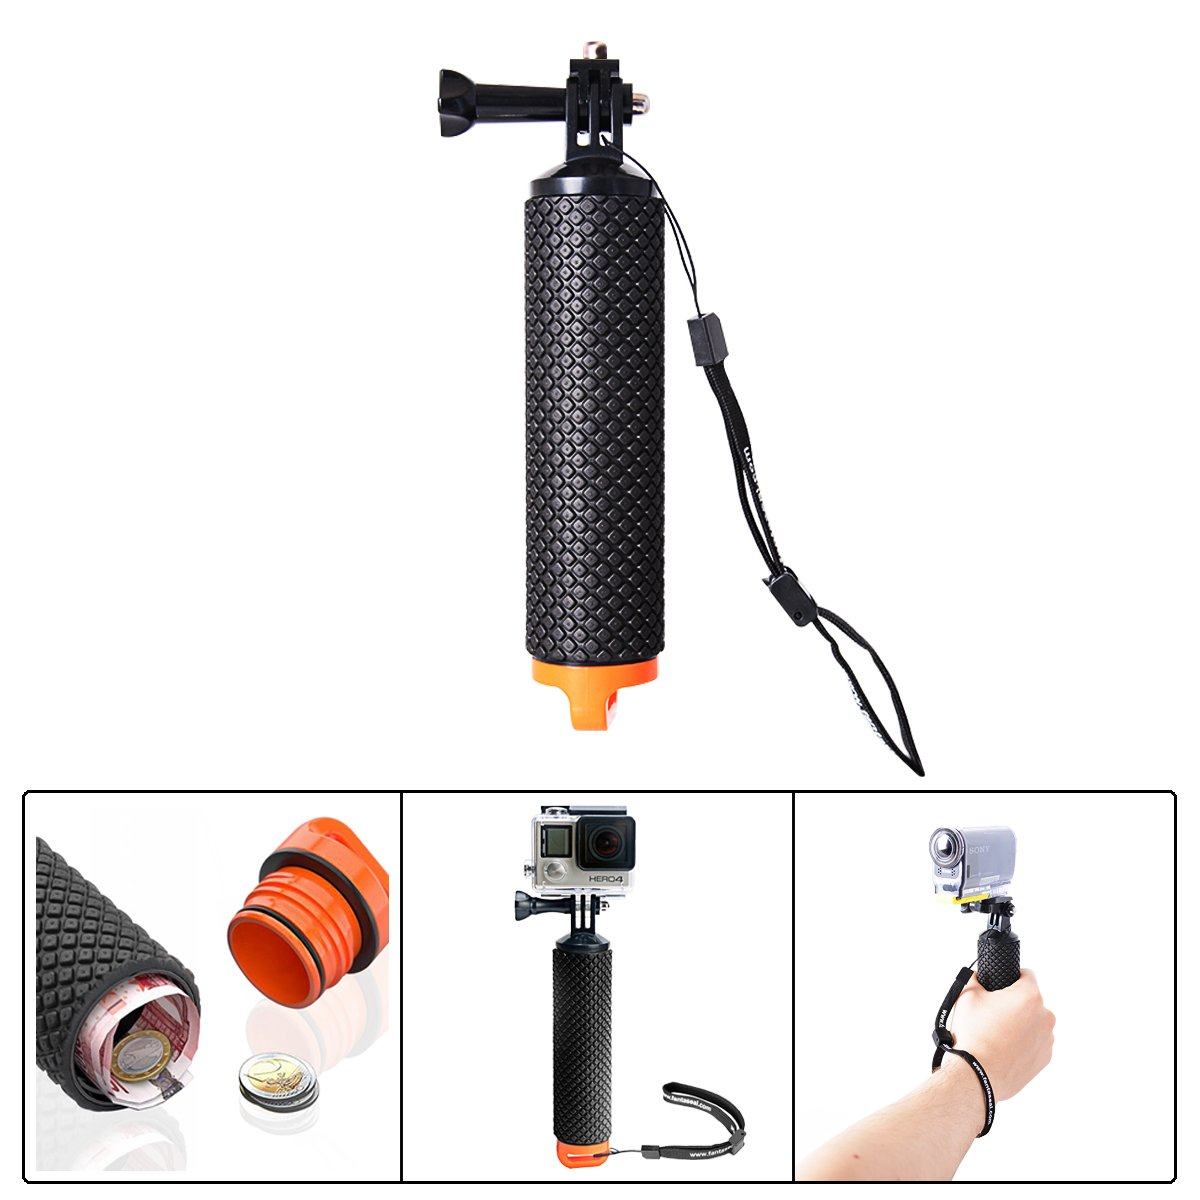 Fantaseal Coutainer Floaty Bobber Camera Grip for Sony Storage Floating Bobber Handheld Grip Sony Lightweight Handle Grip Stabilizer for Sony Gopro SJCAM Xiaomi Yi + Nikon Canon Sony DSLR /Comcorder